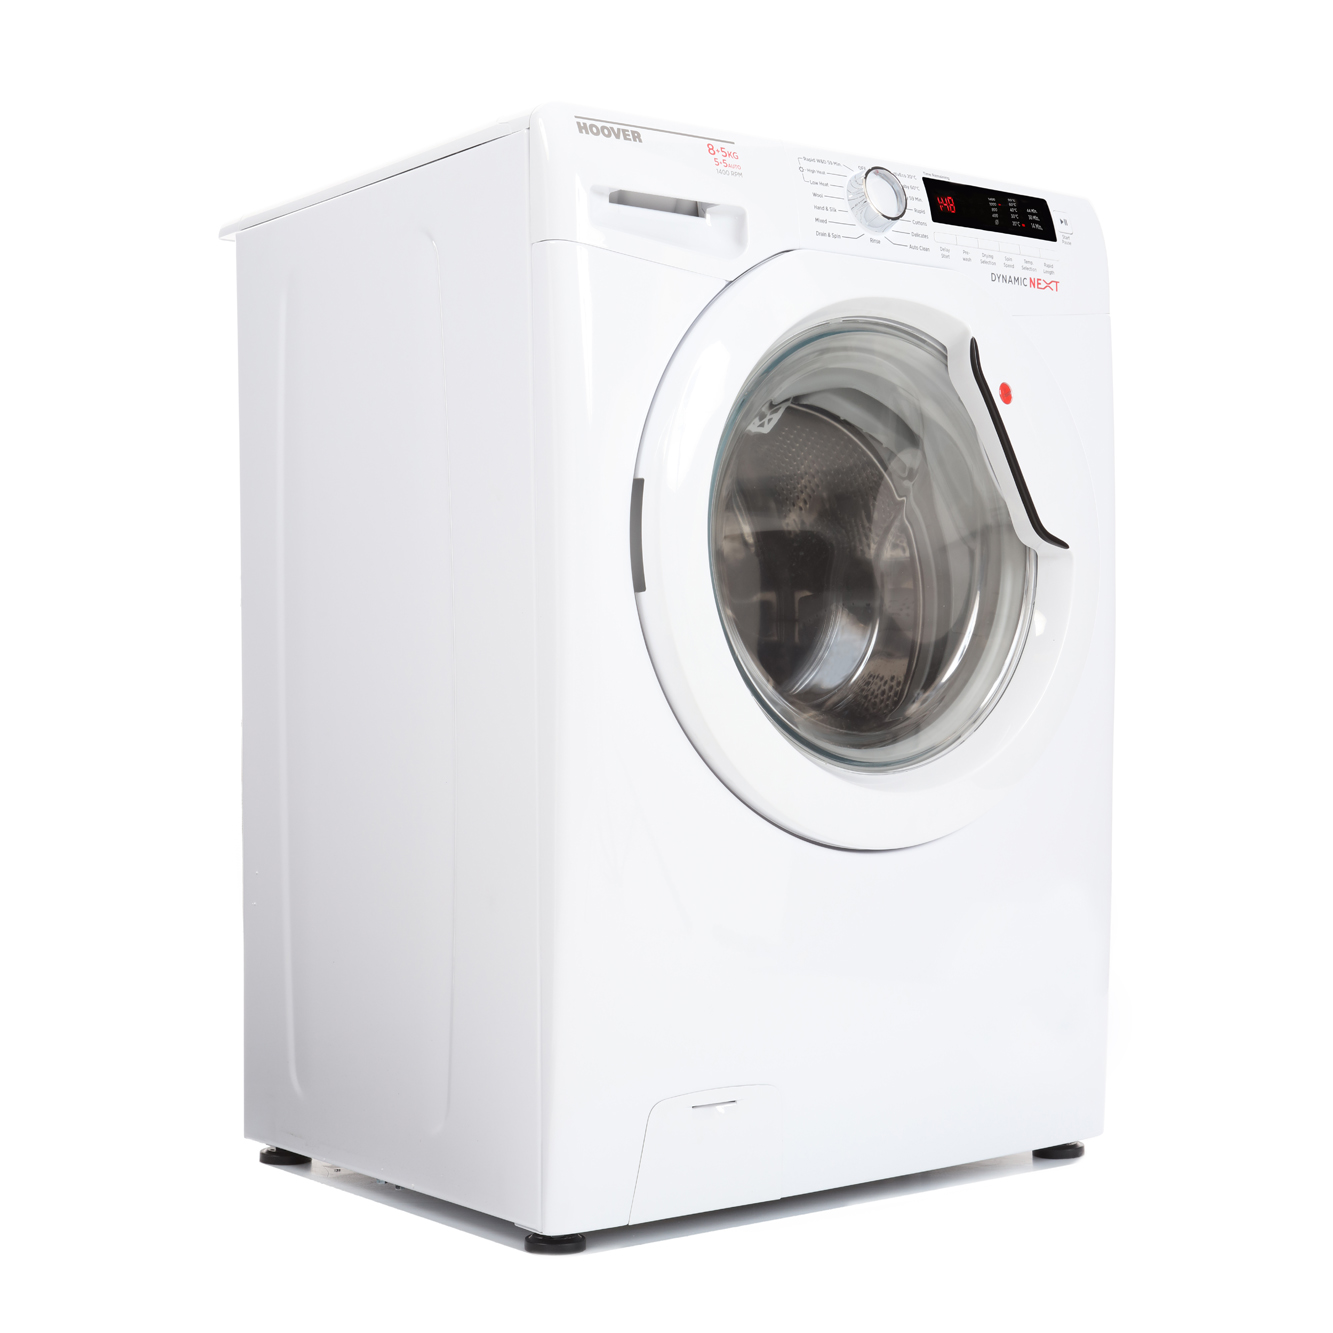 Hoover WDXC4851 Washer Dryer